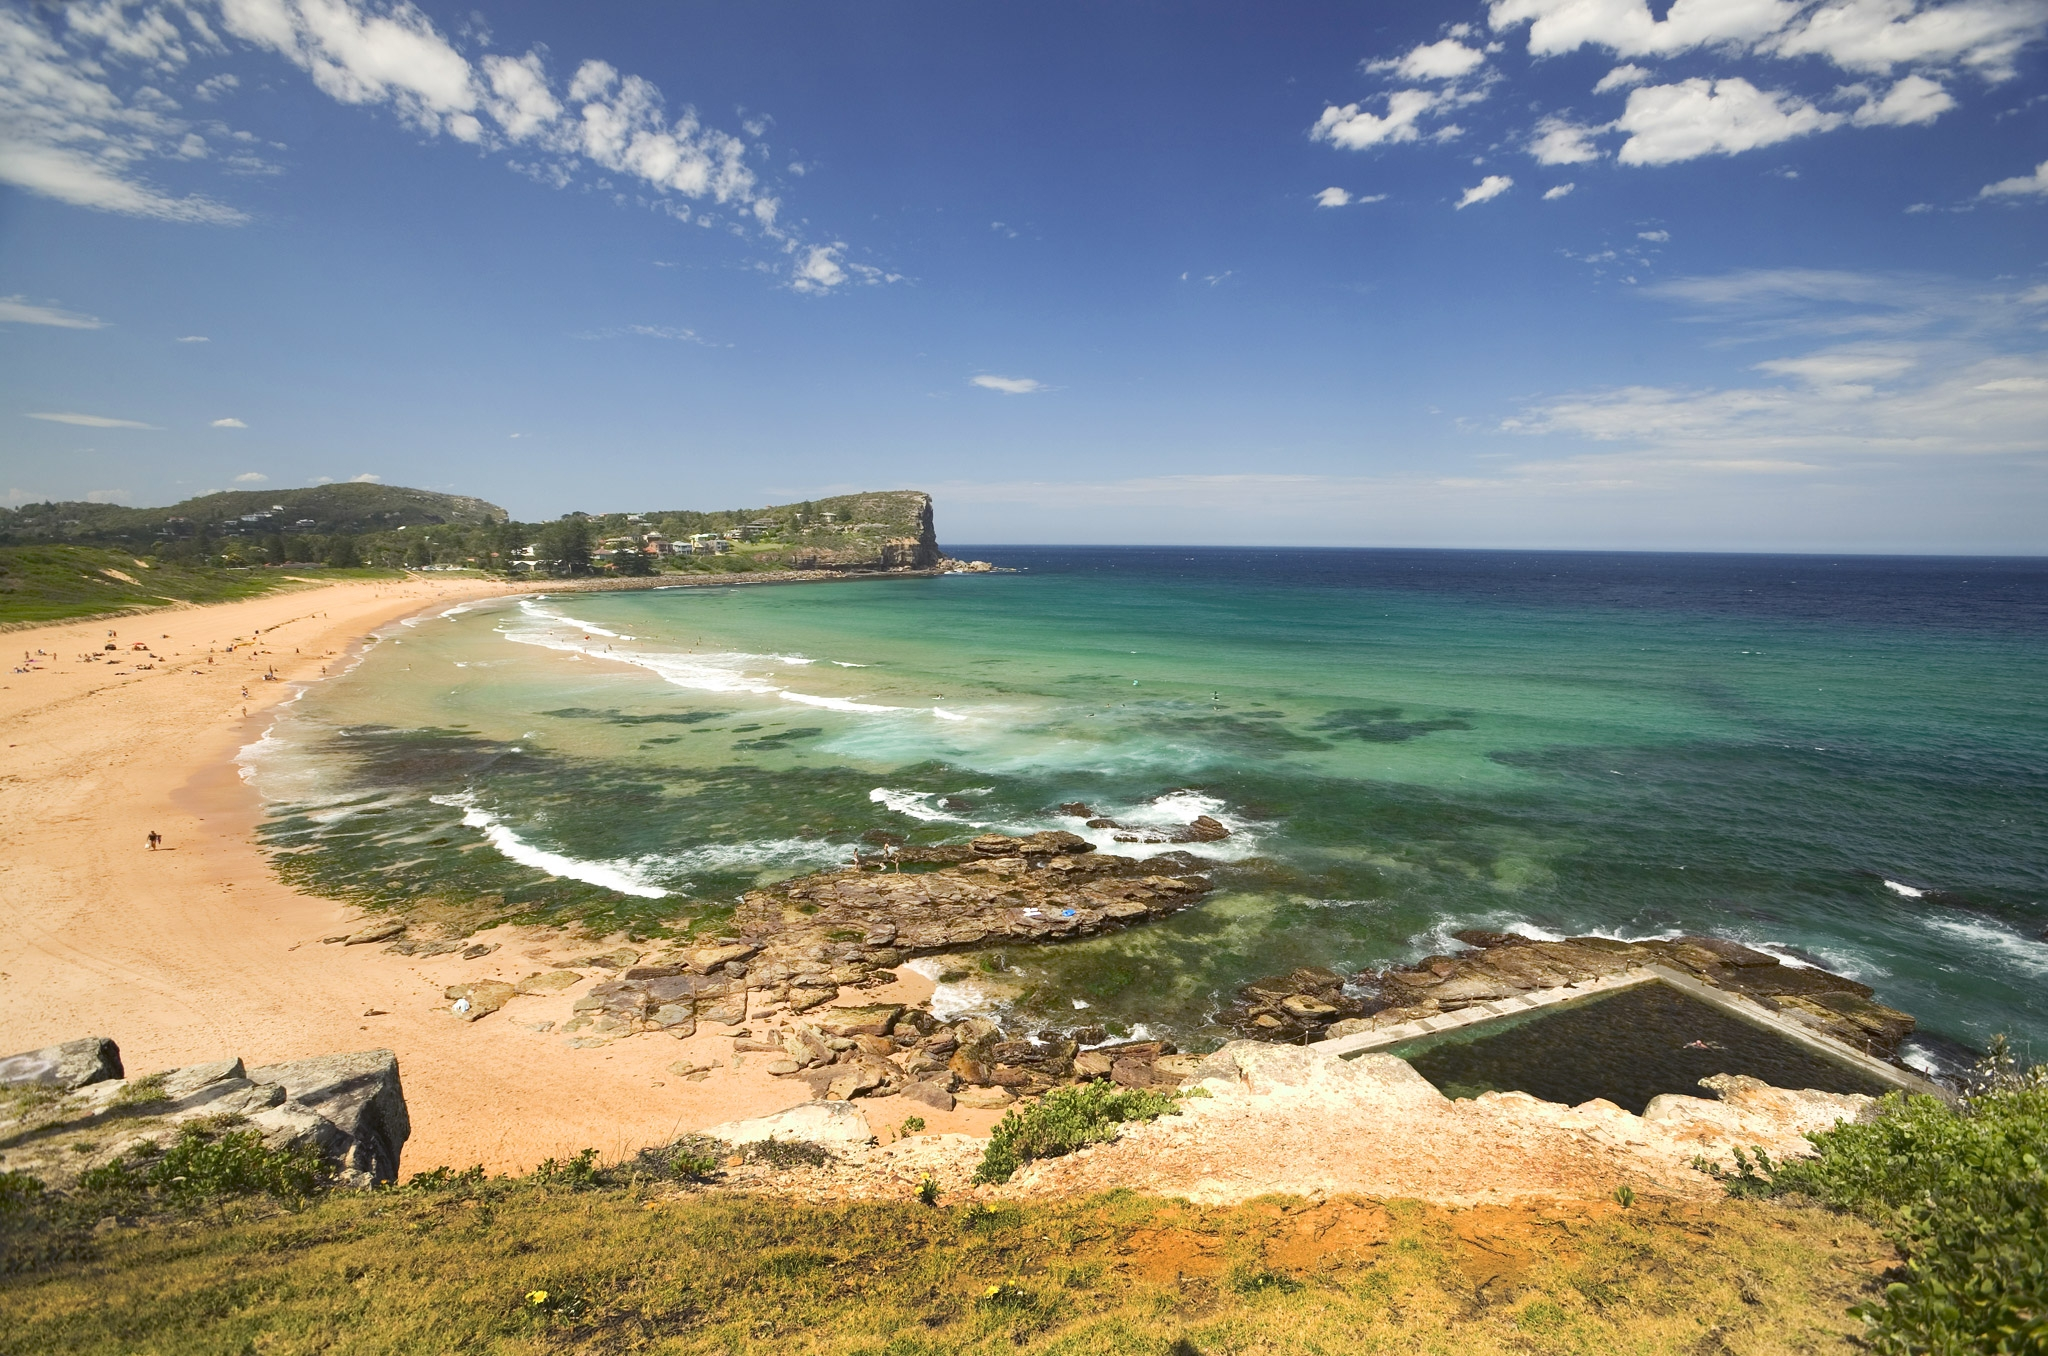 Image © Sydney Northern Beaches Tourism Association